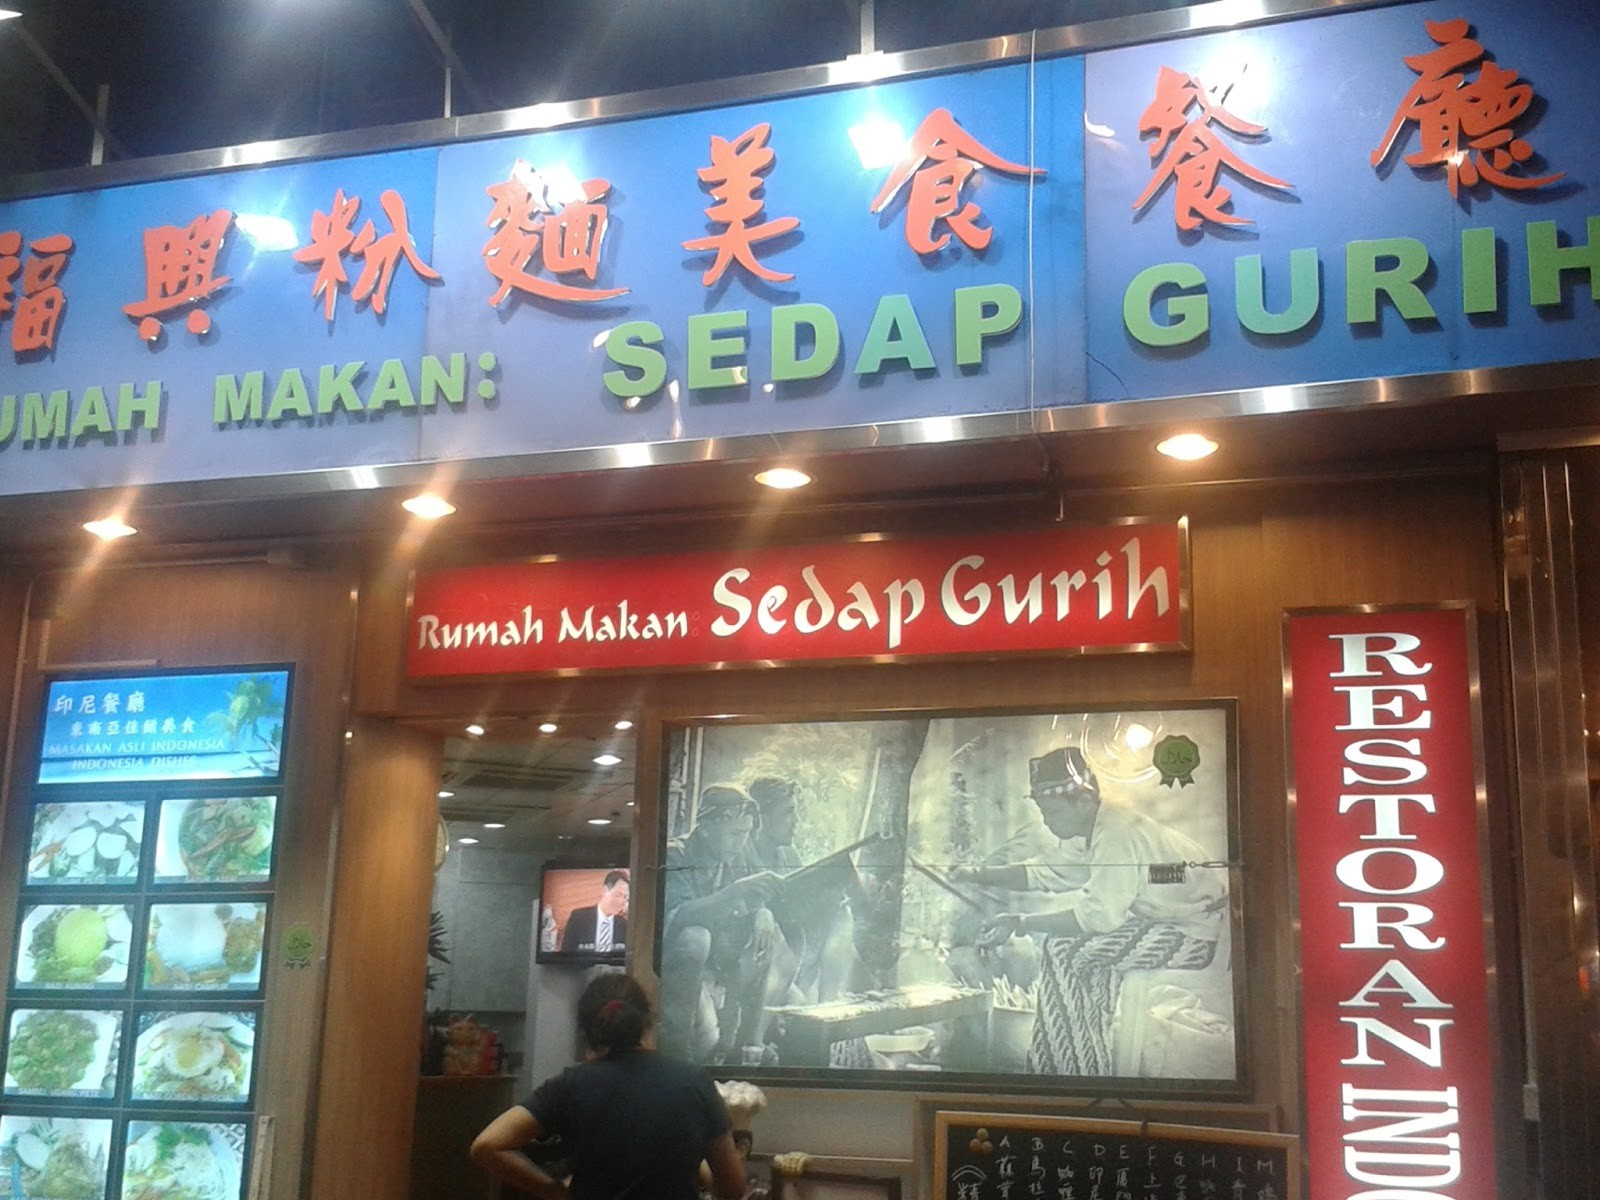 The other place that we went to eat is an Indonesian restaurant named Rumah Makan Sedap Gurih This restaurant is located at the hook of Sugar Street Rd